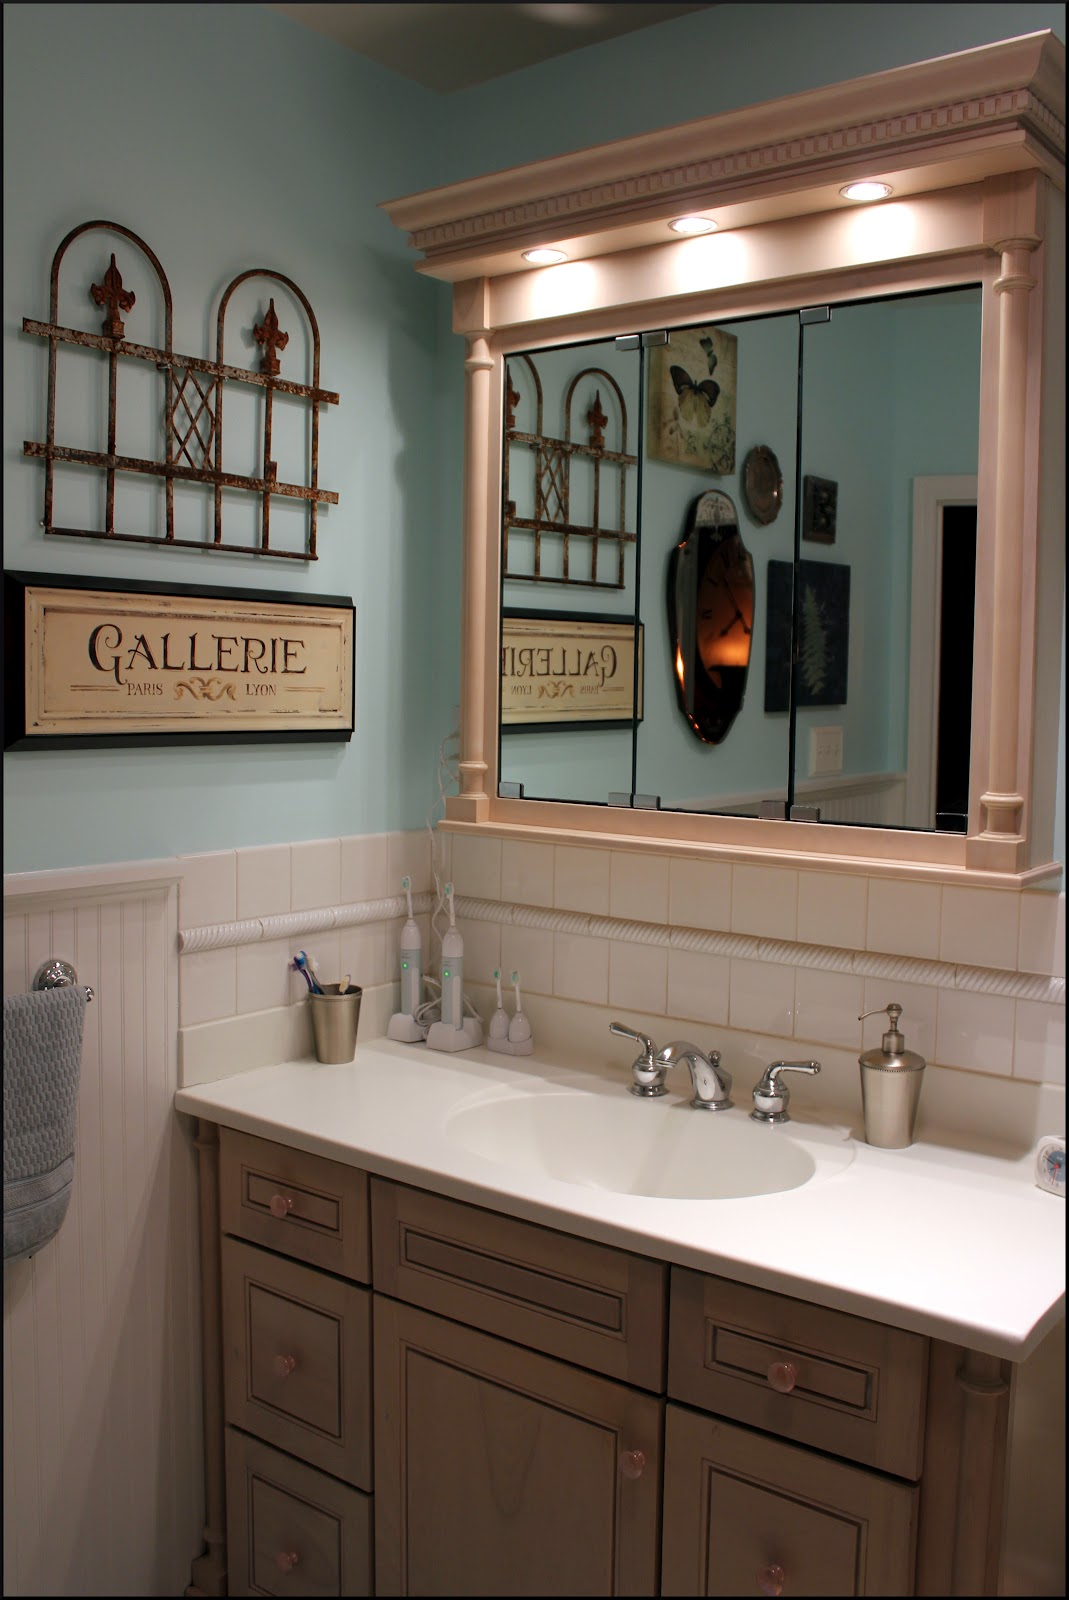 French Inspired Bathroom Blue And Green: Bleu Hydrangea: French-Inspired Bathroom Re-do